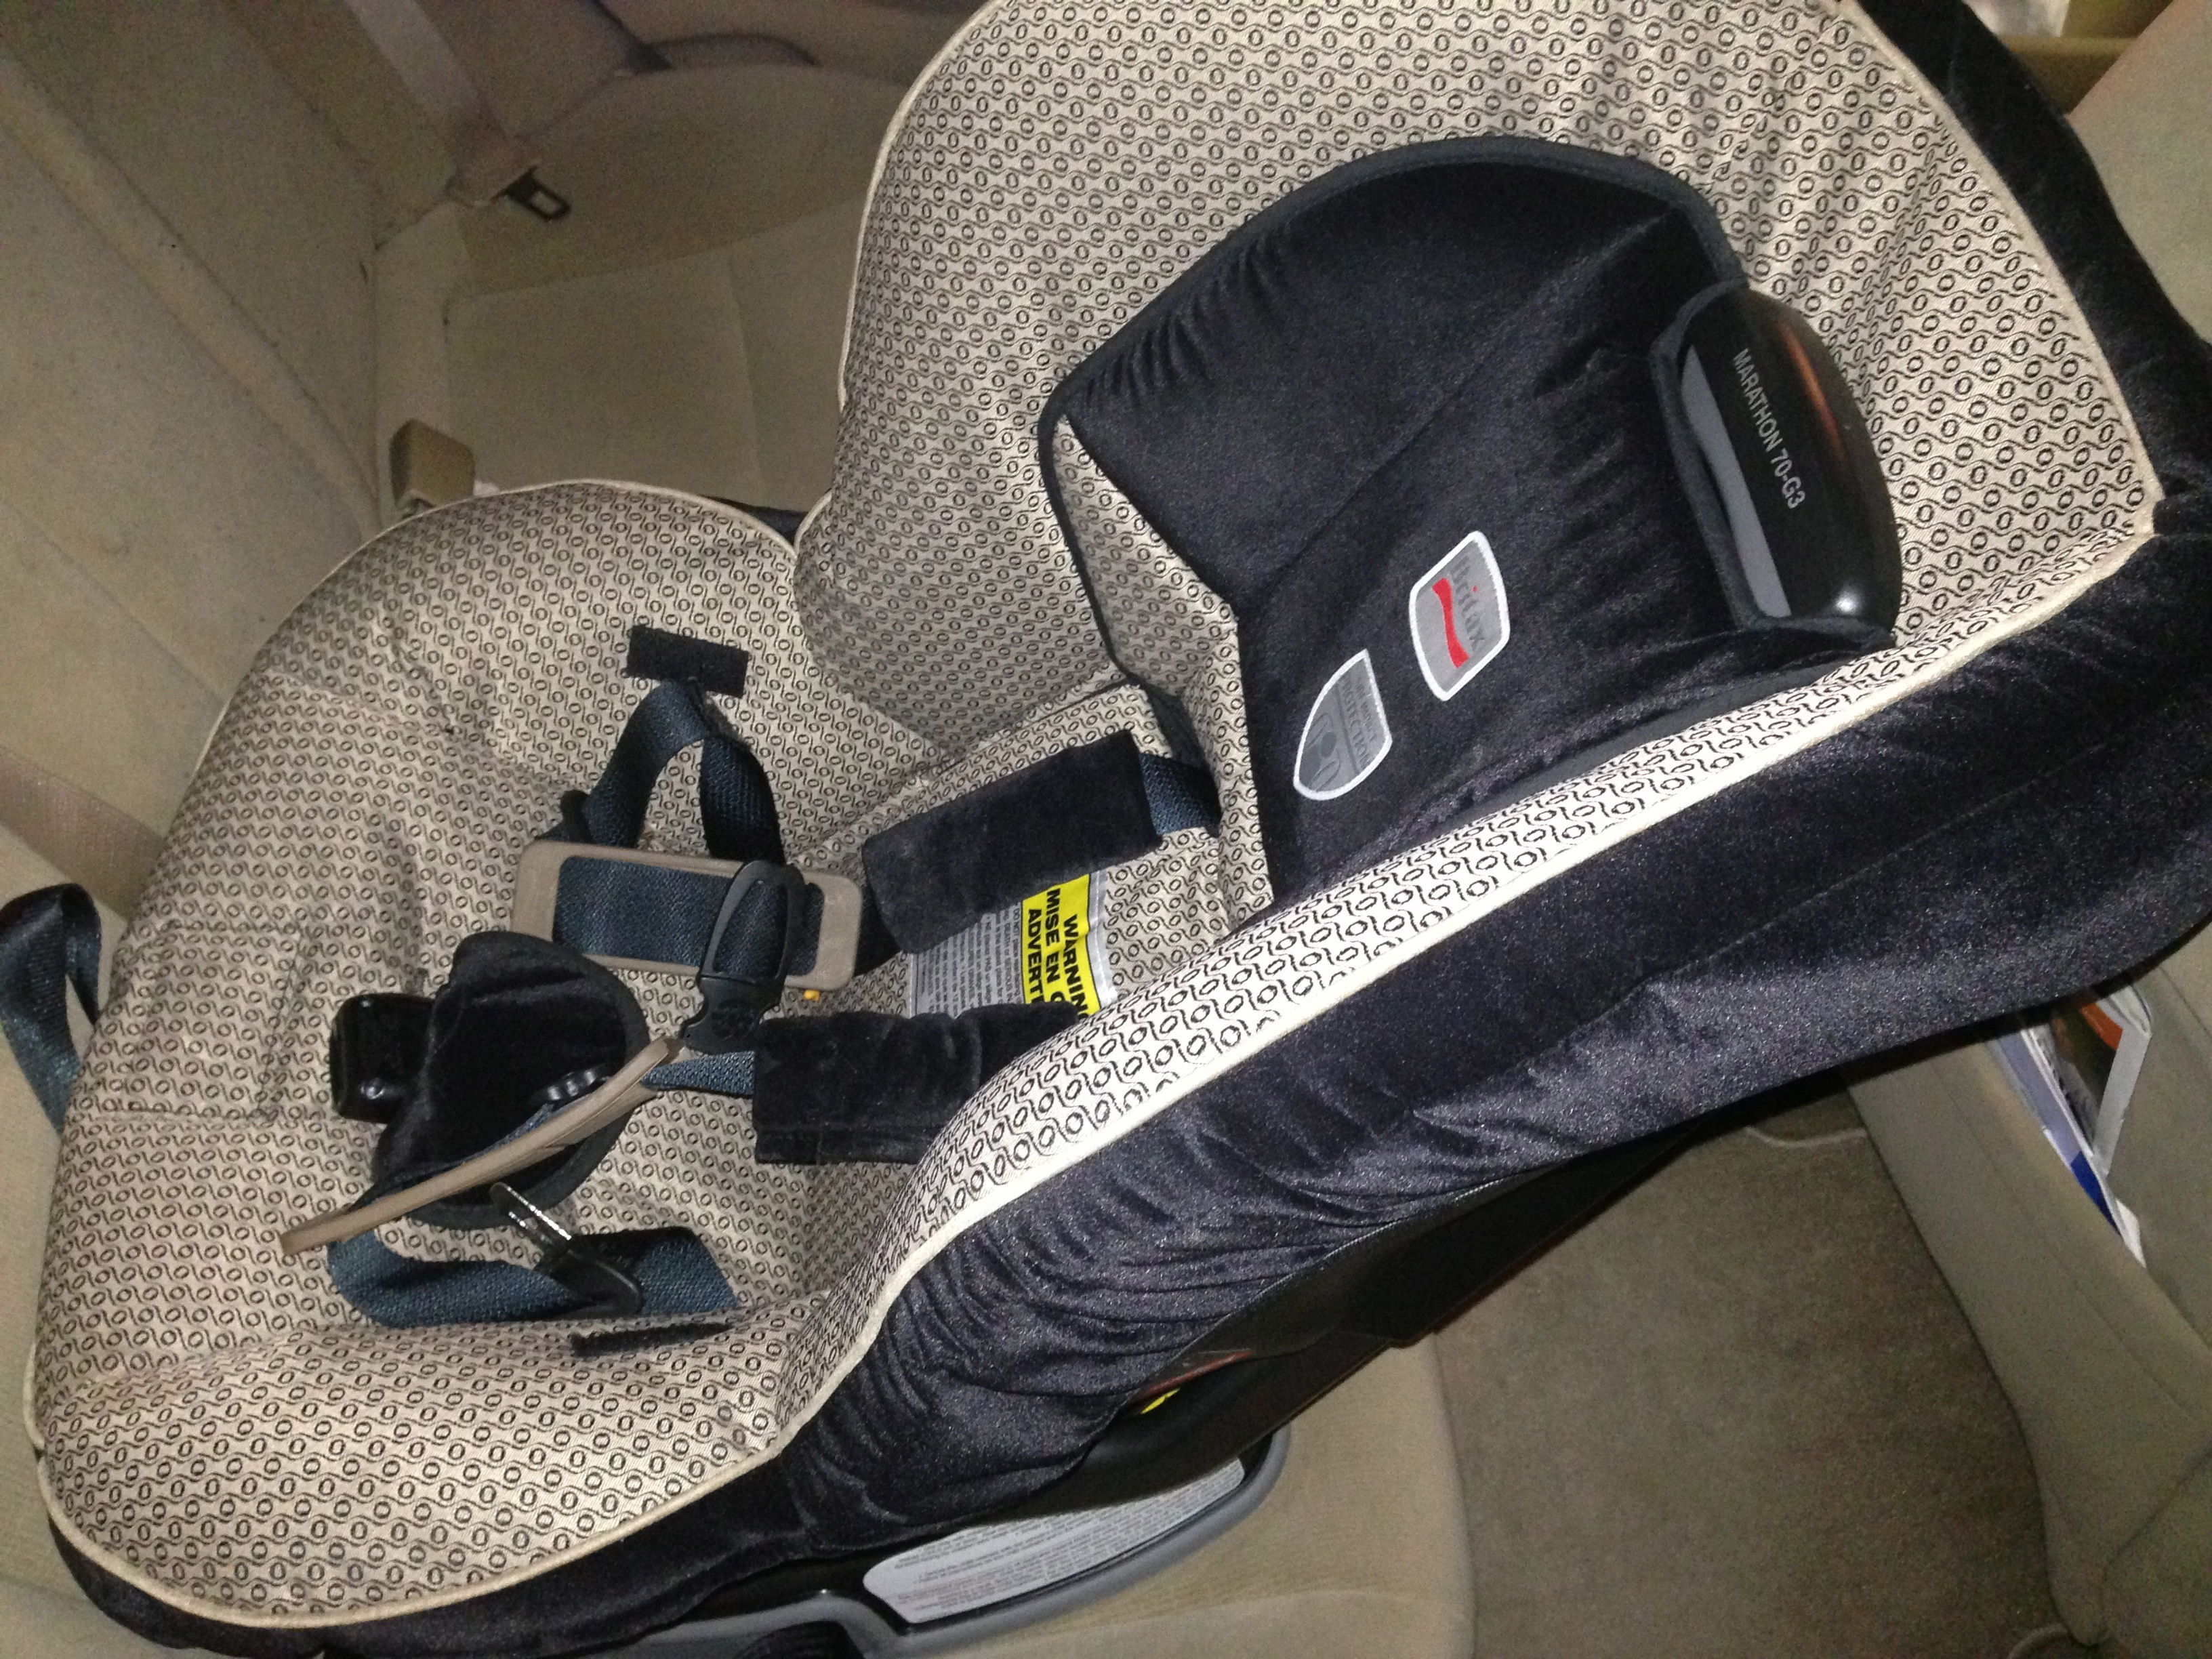 Today's Hint: Instead of Renting a Car Seat, Check it for Free on Your Next Flight